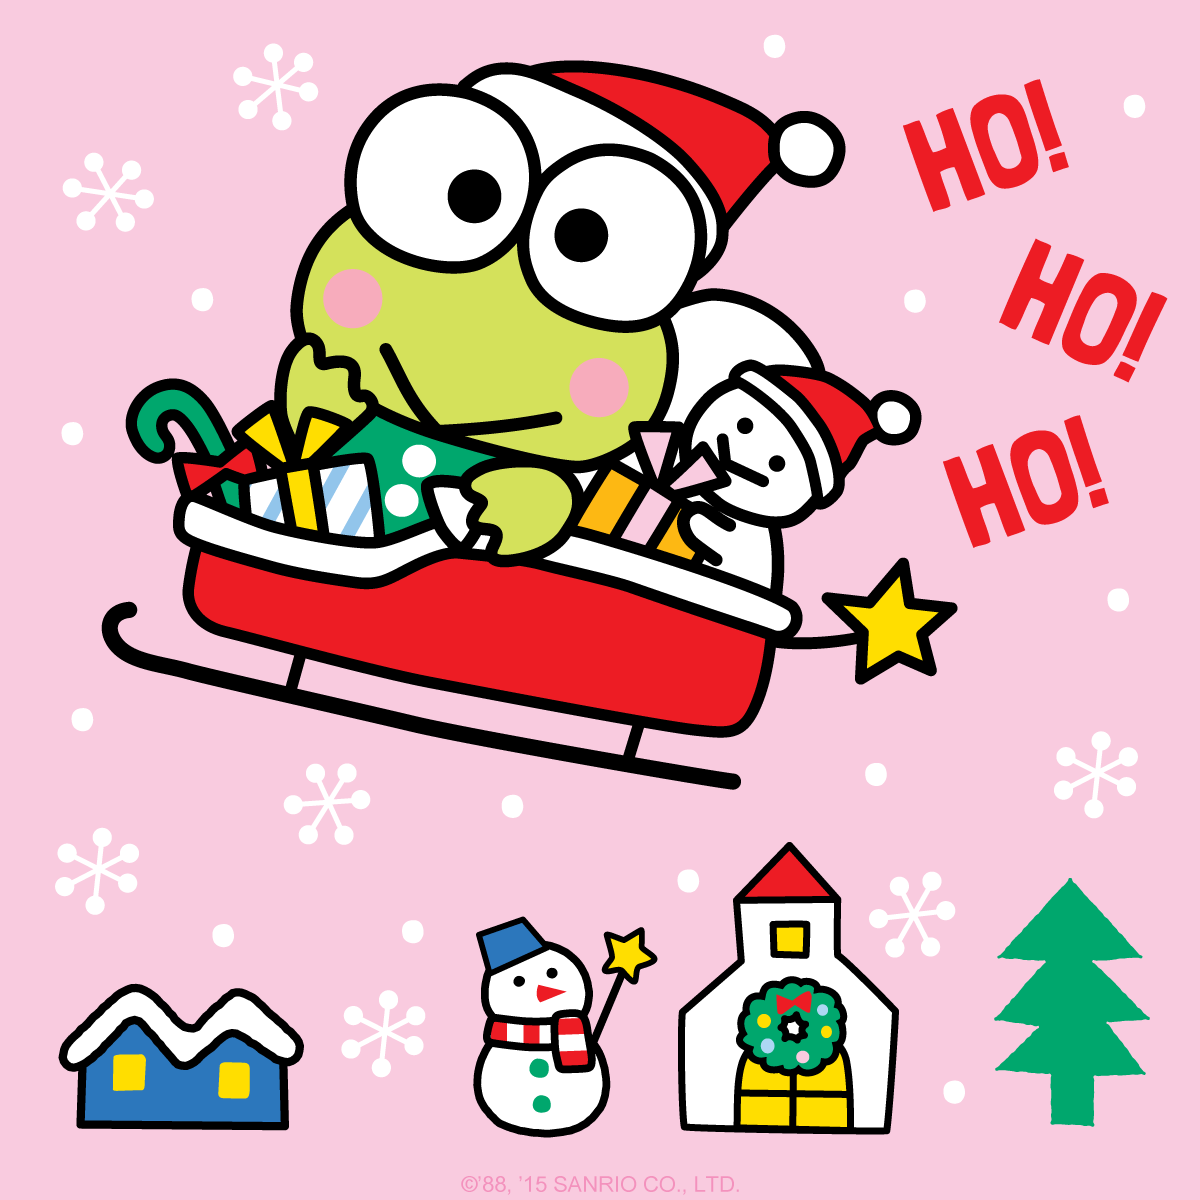 Keroppi Wallpaper Wallpapers: Ho-ho-holidays! In Celebration Of The Season, Here's A